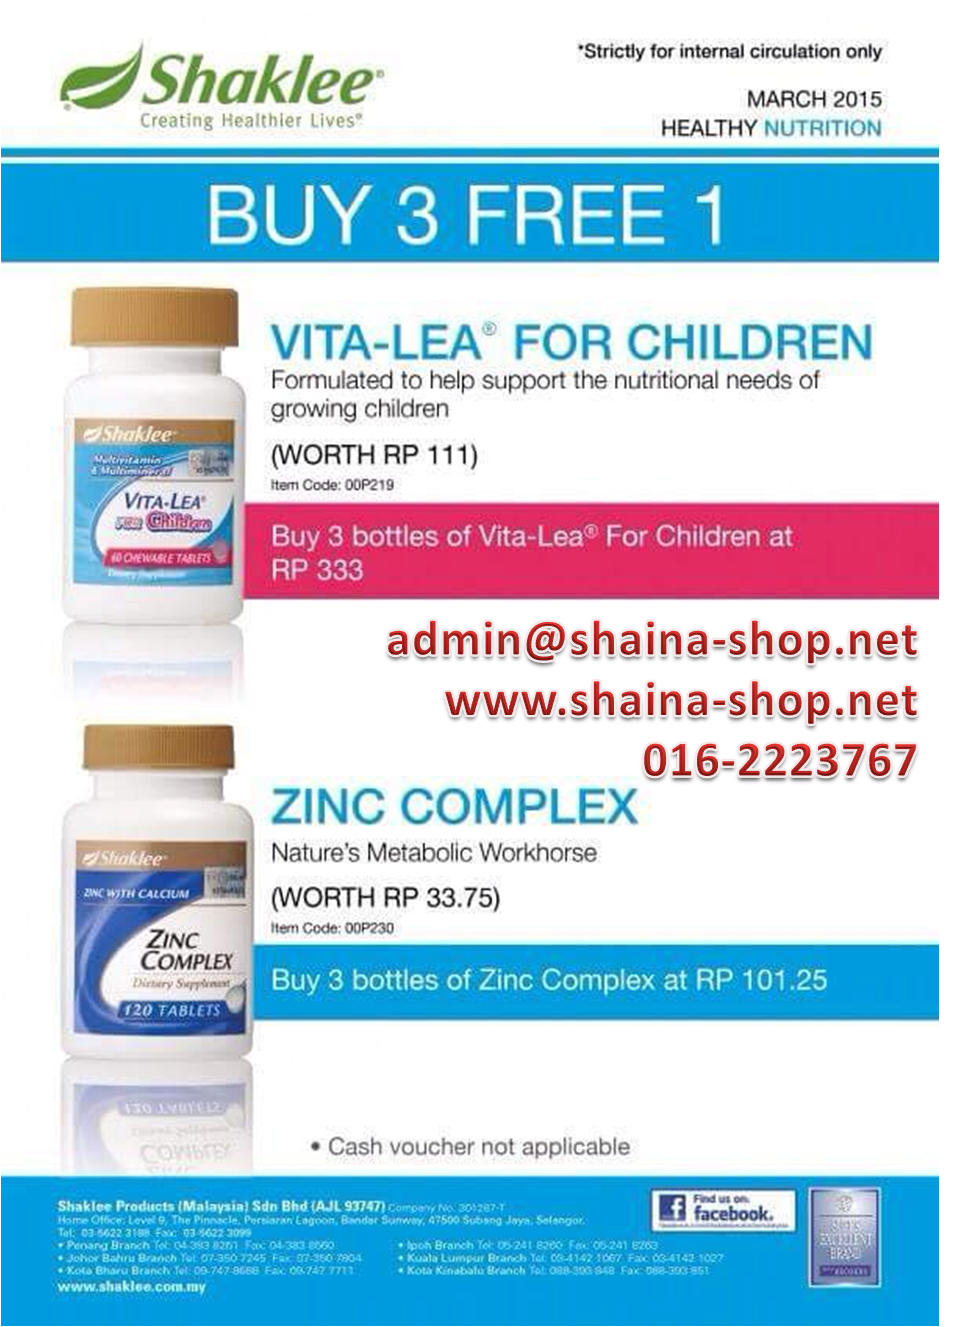 PROMOSI SHAKLEE MAC 2015: VITA-LEA FOR CHILDREN & ZINC COMPLEX (BELI 3 PERCUMA 1)